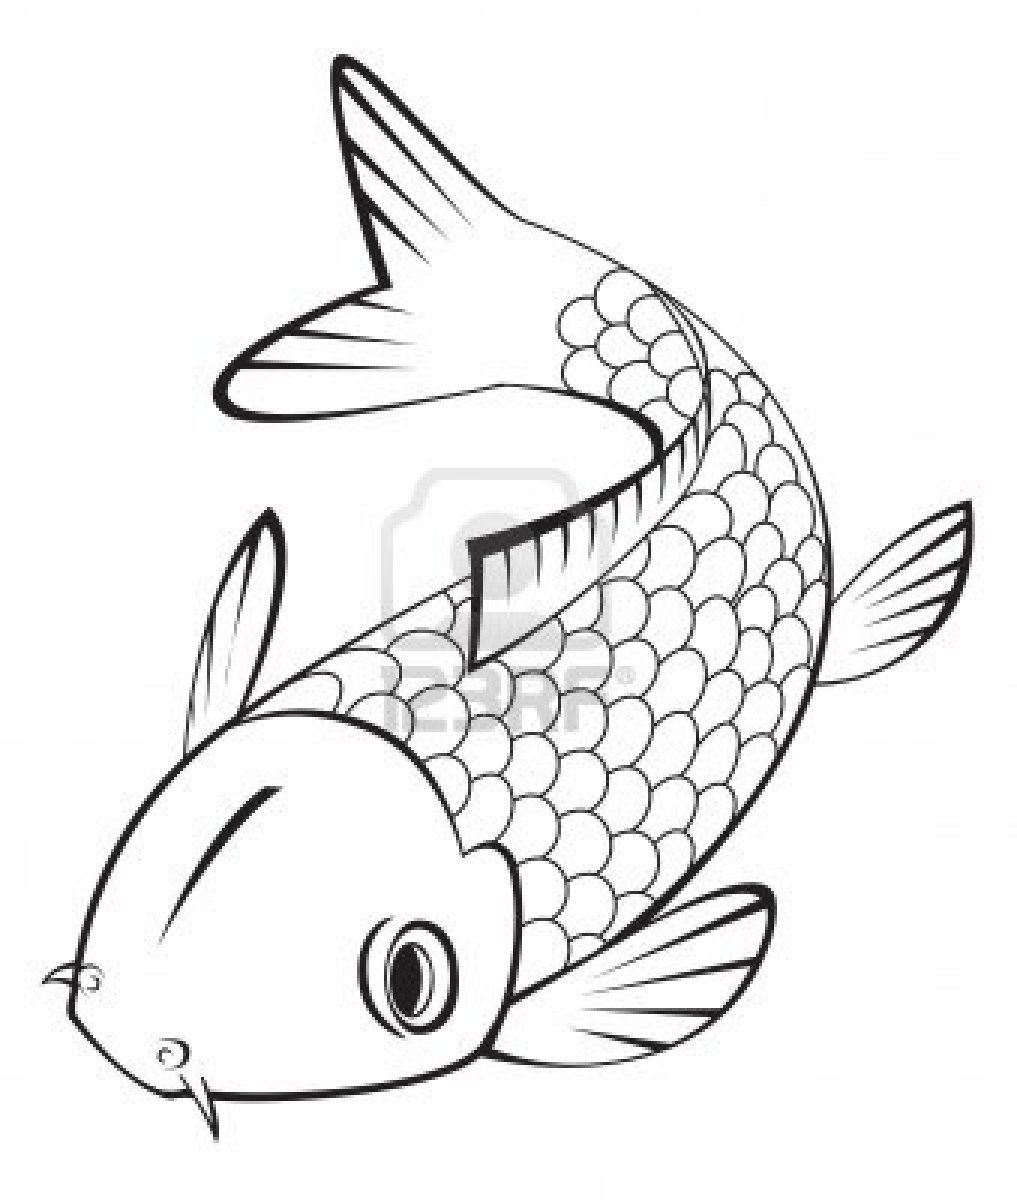 Download Koi Fish Coloring Pages